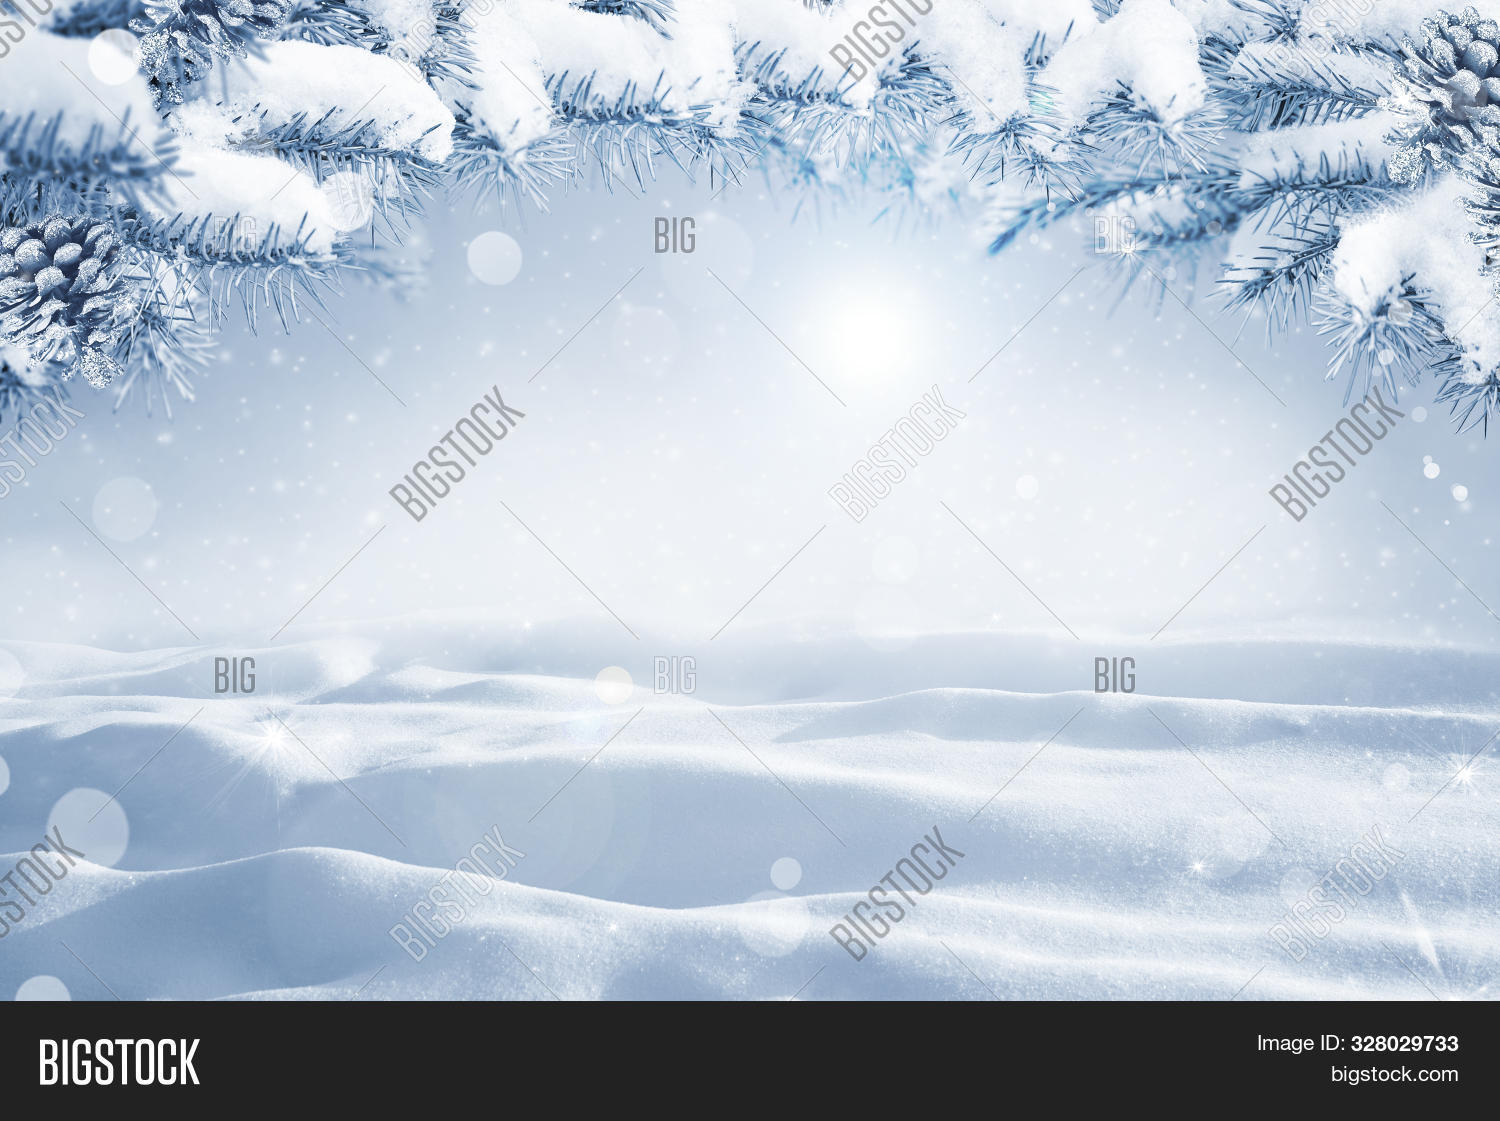 abstract,background,beautiful,blue,border,branch,card,christmas,cold,copy,decoration,denver,design,forest,frost,frozen,holiday,ice,icy,landscape,light,mountain,nature,new,outdoor,scene,season,seasonal,sign,sky,snow,snowdrift,snowfall,snowy,space,spruce,sunny,table,text,texture,tree,white,winter,wintertime,woman,wood,wooden,year